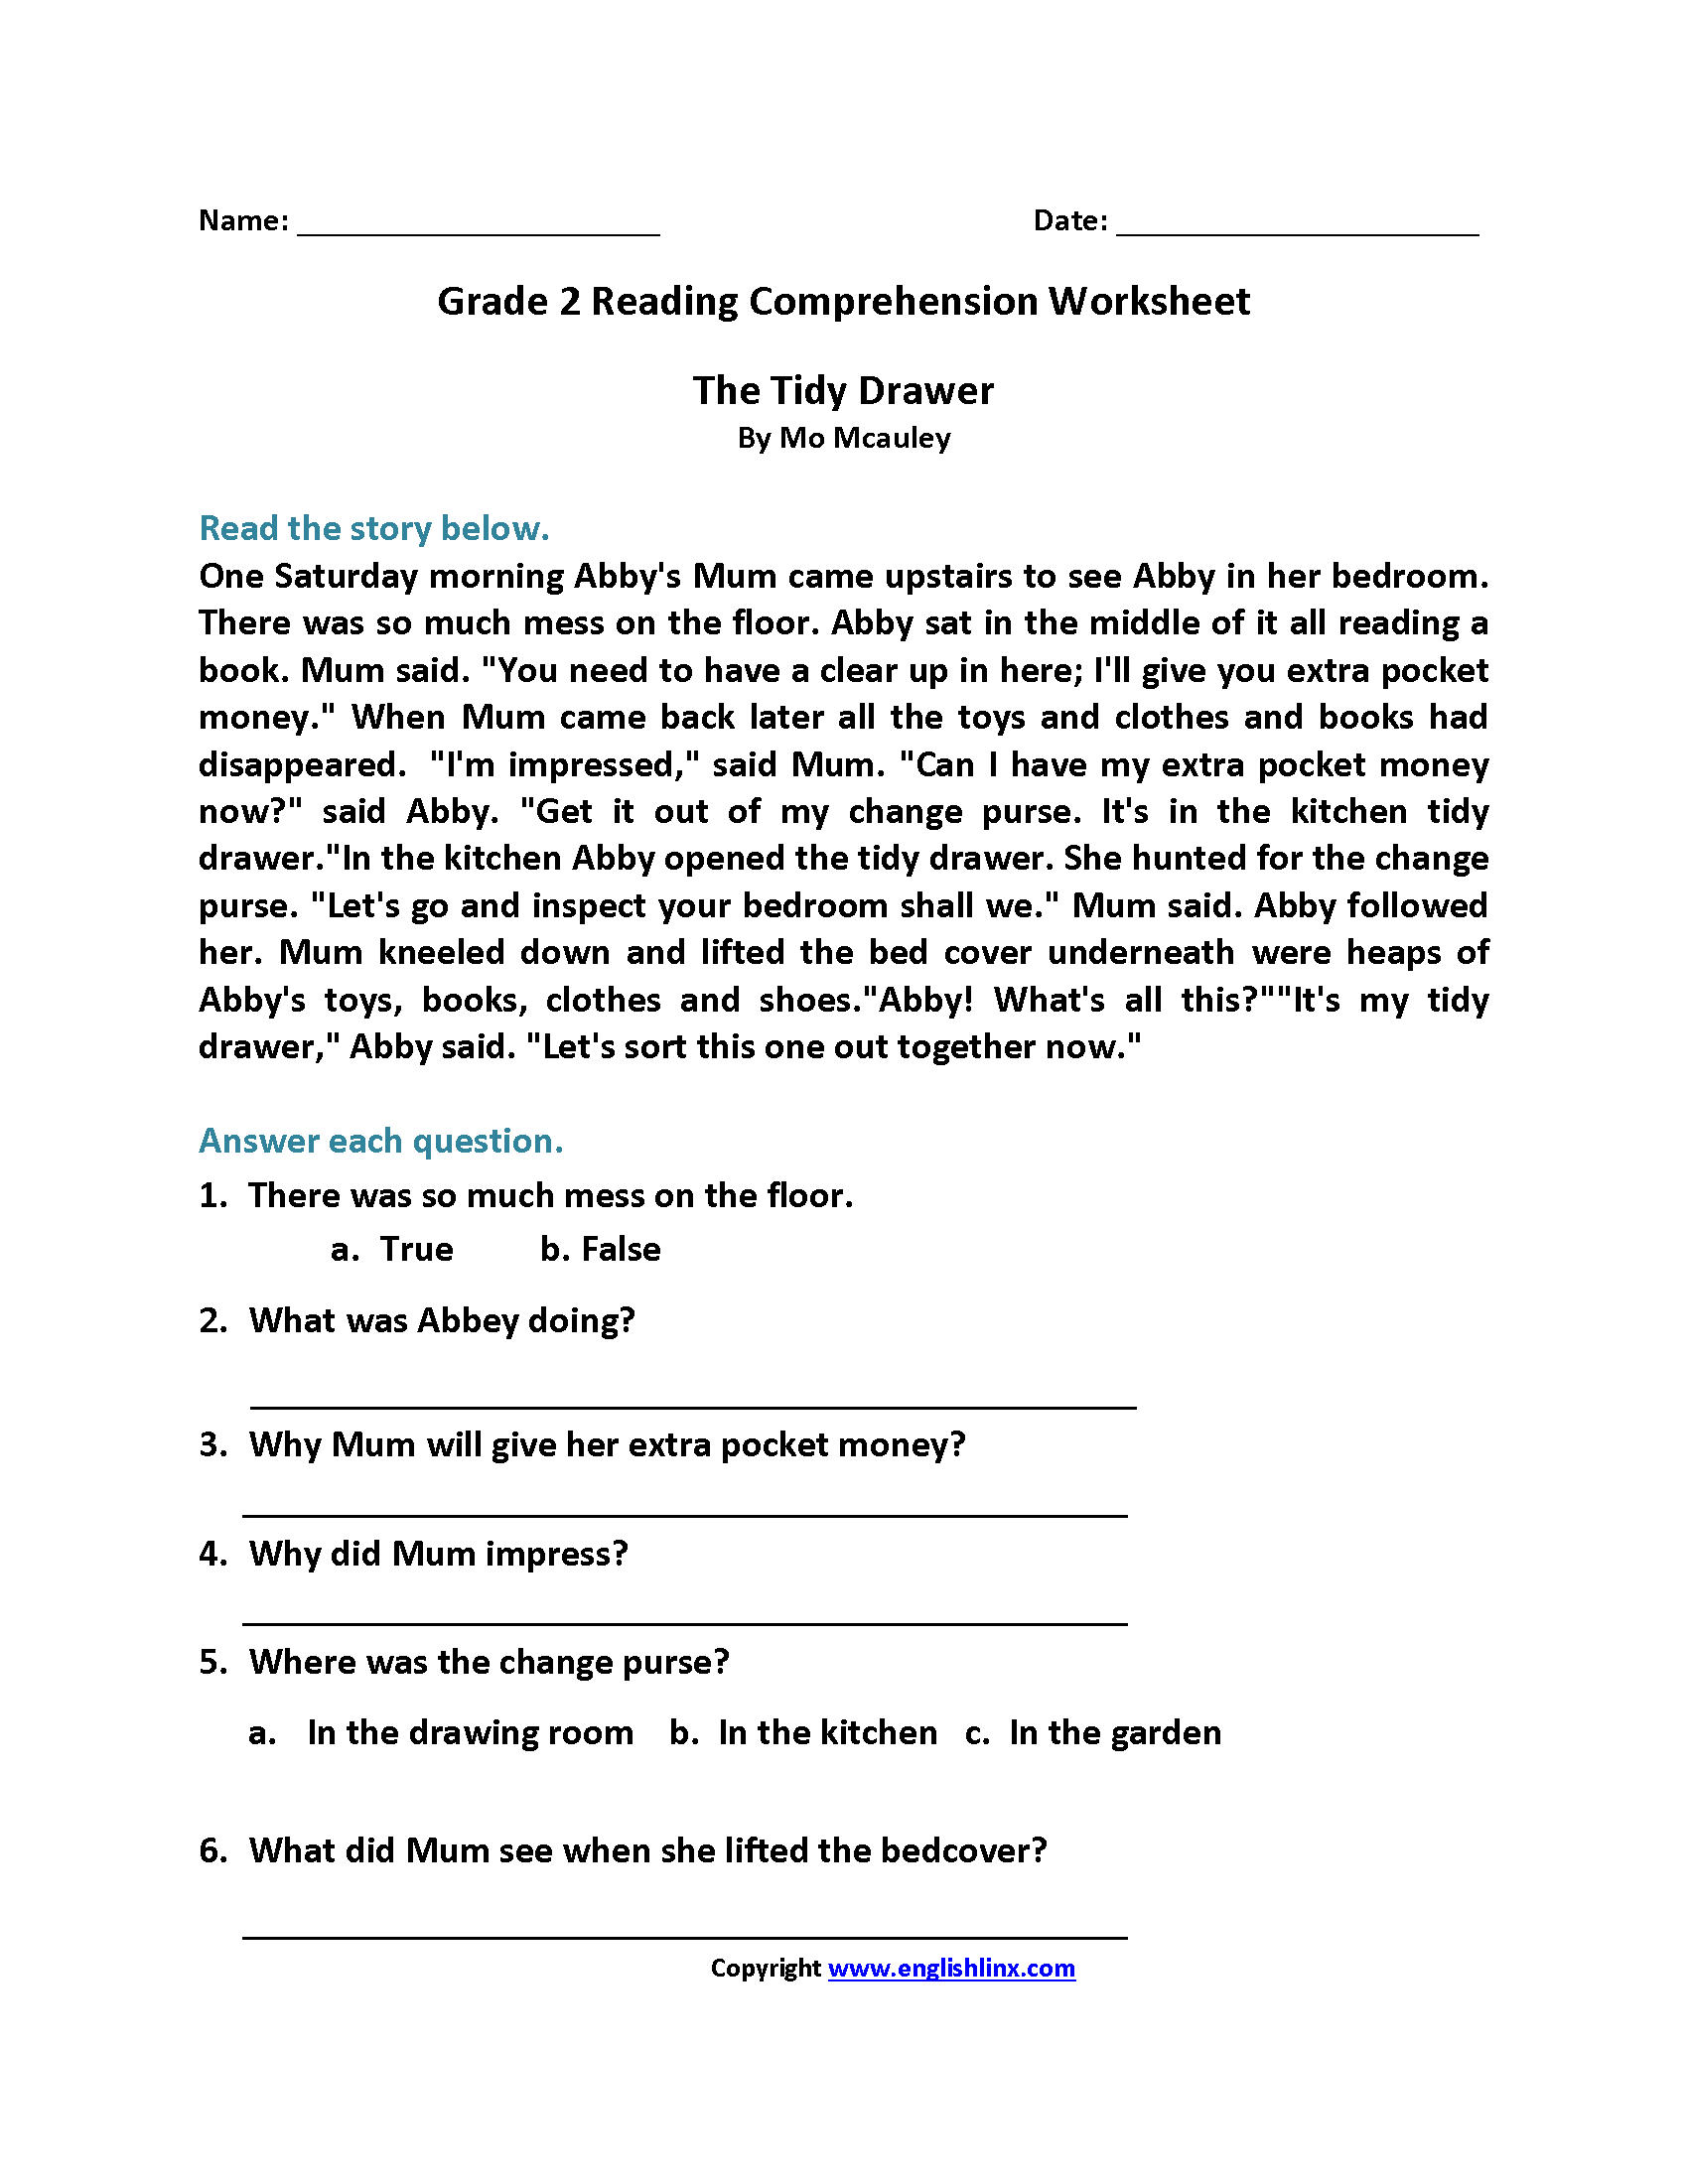 The Tidy Drawer Second Grade Reading Worksheets